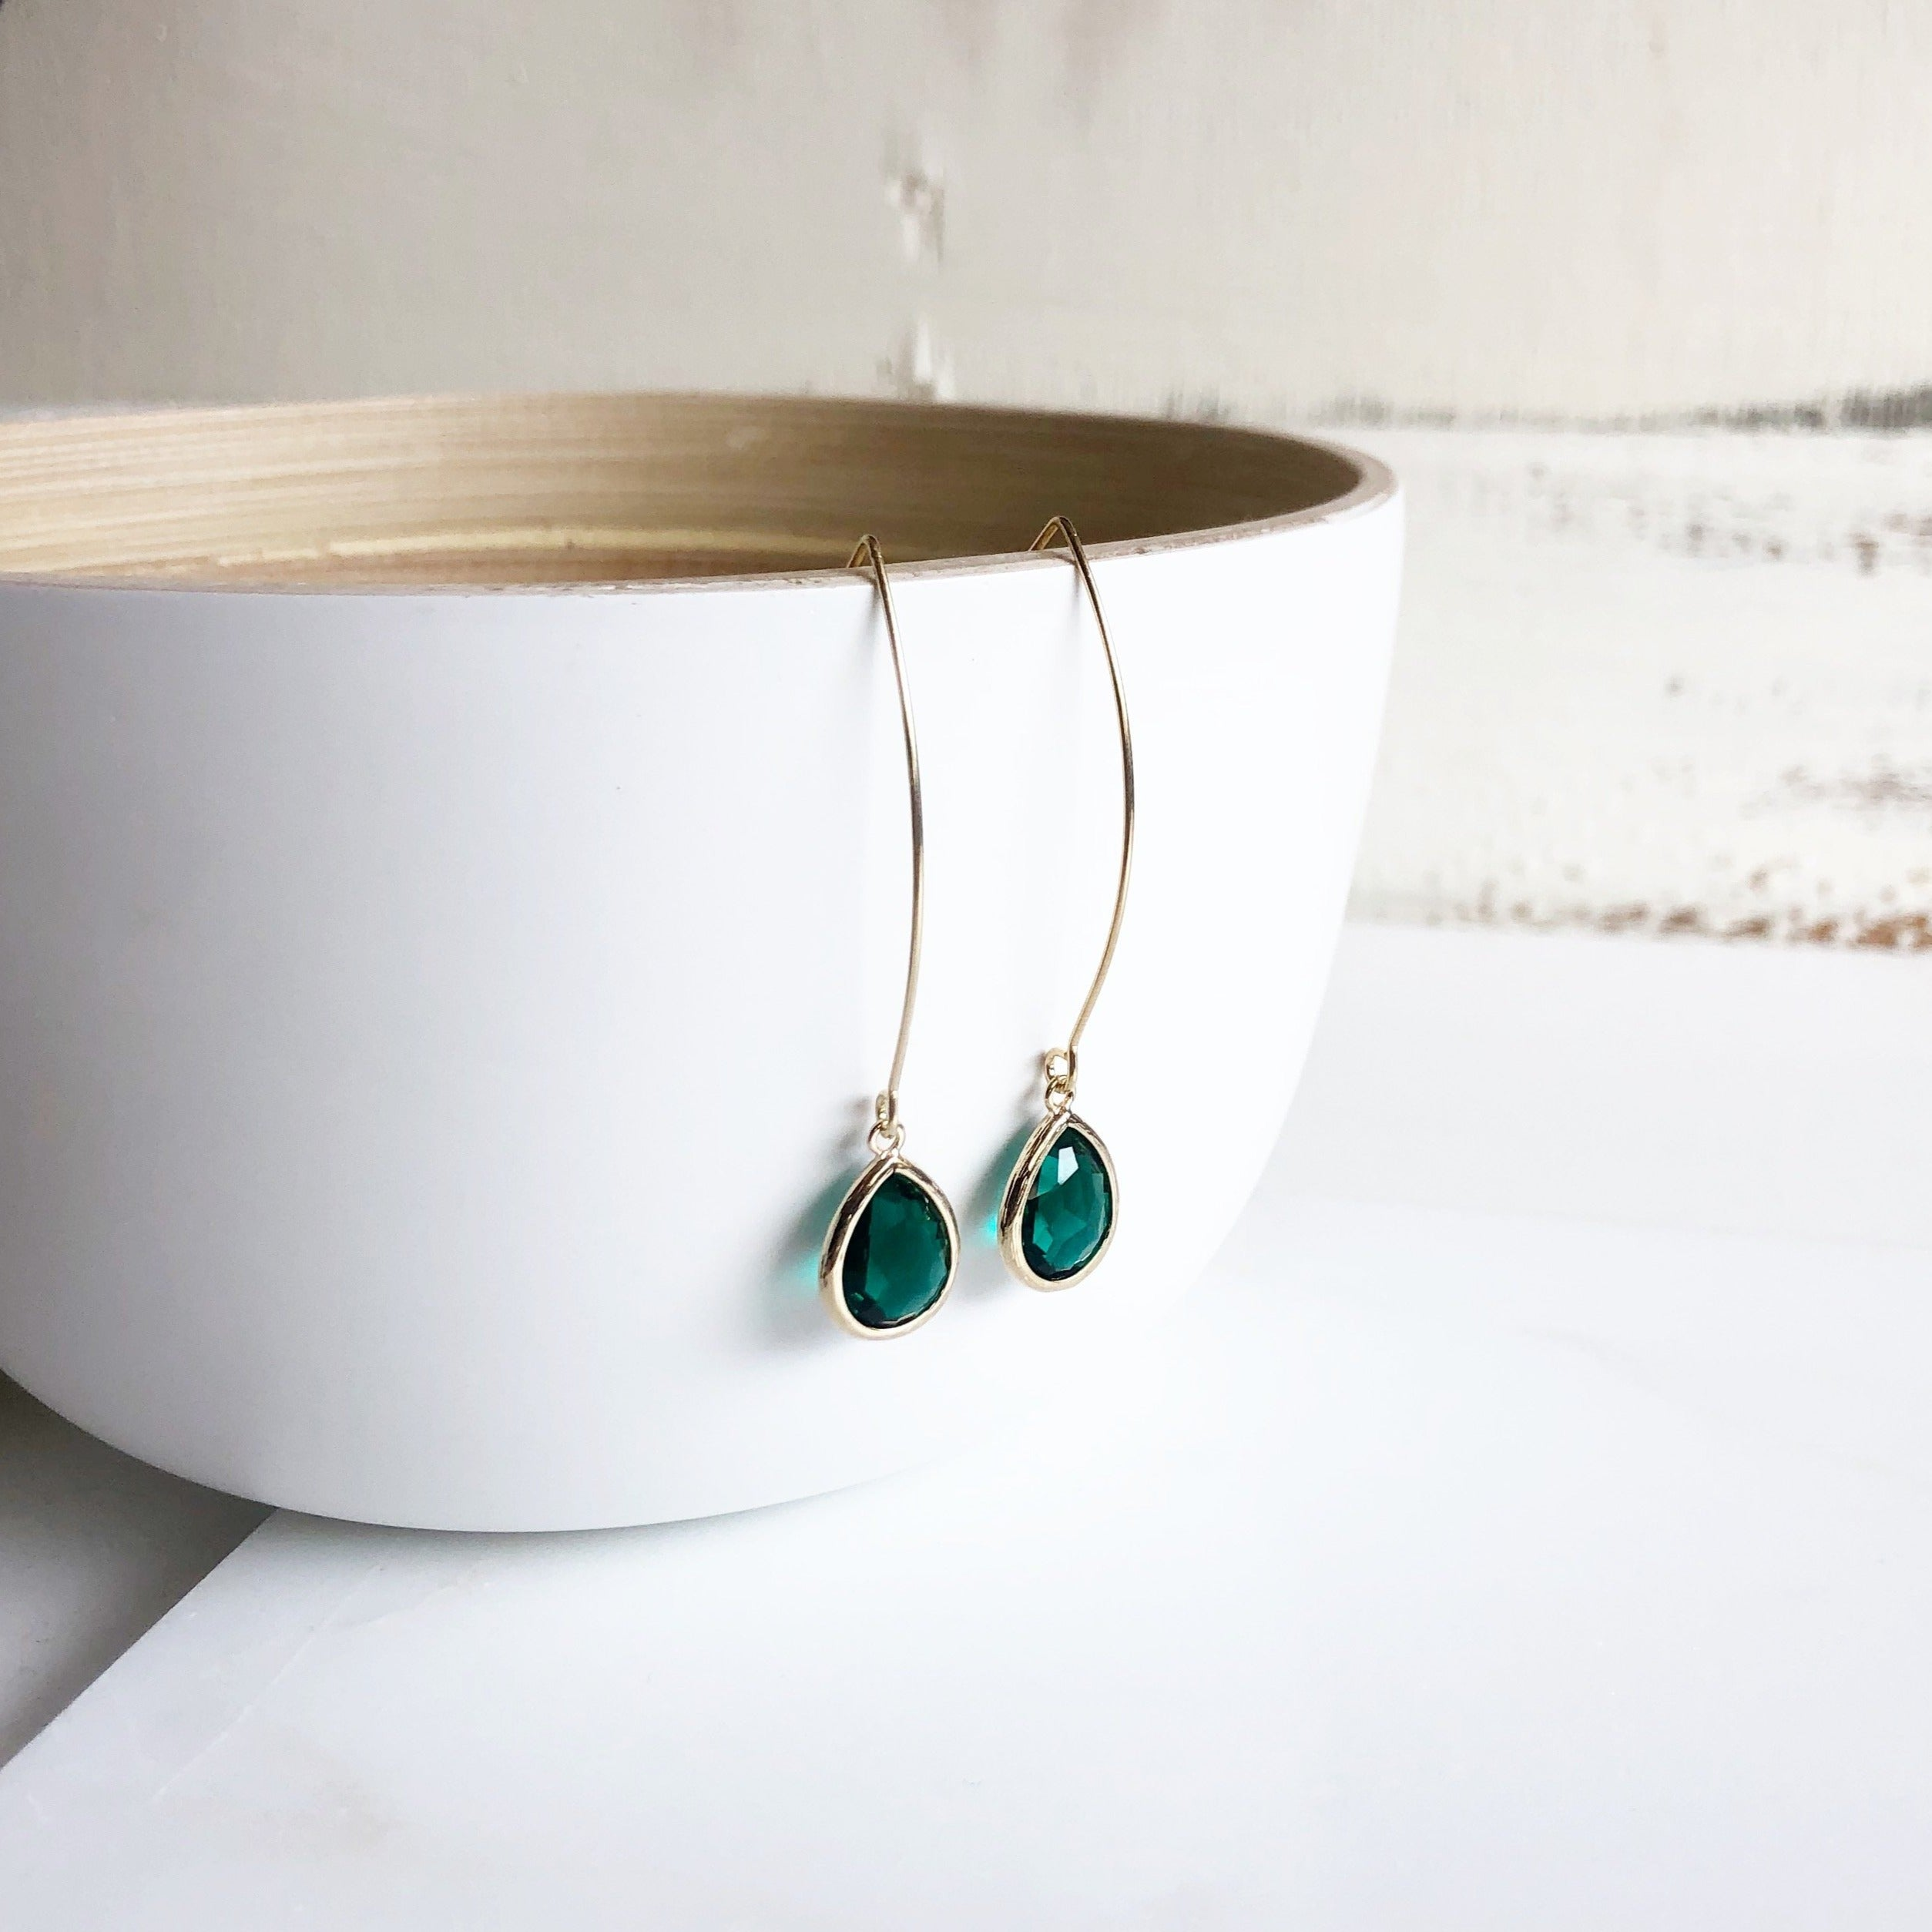 Emerald Green Dangle Earrings in Gold. Christmas Gift. Holiday Jewelry. Stocking Stuffers.